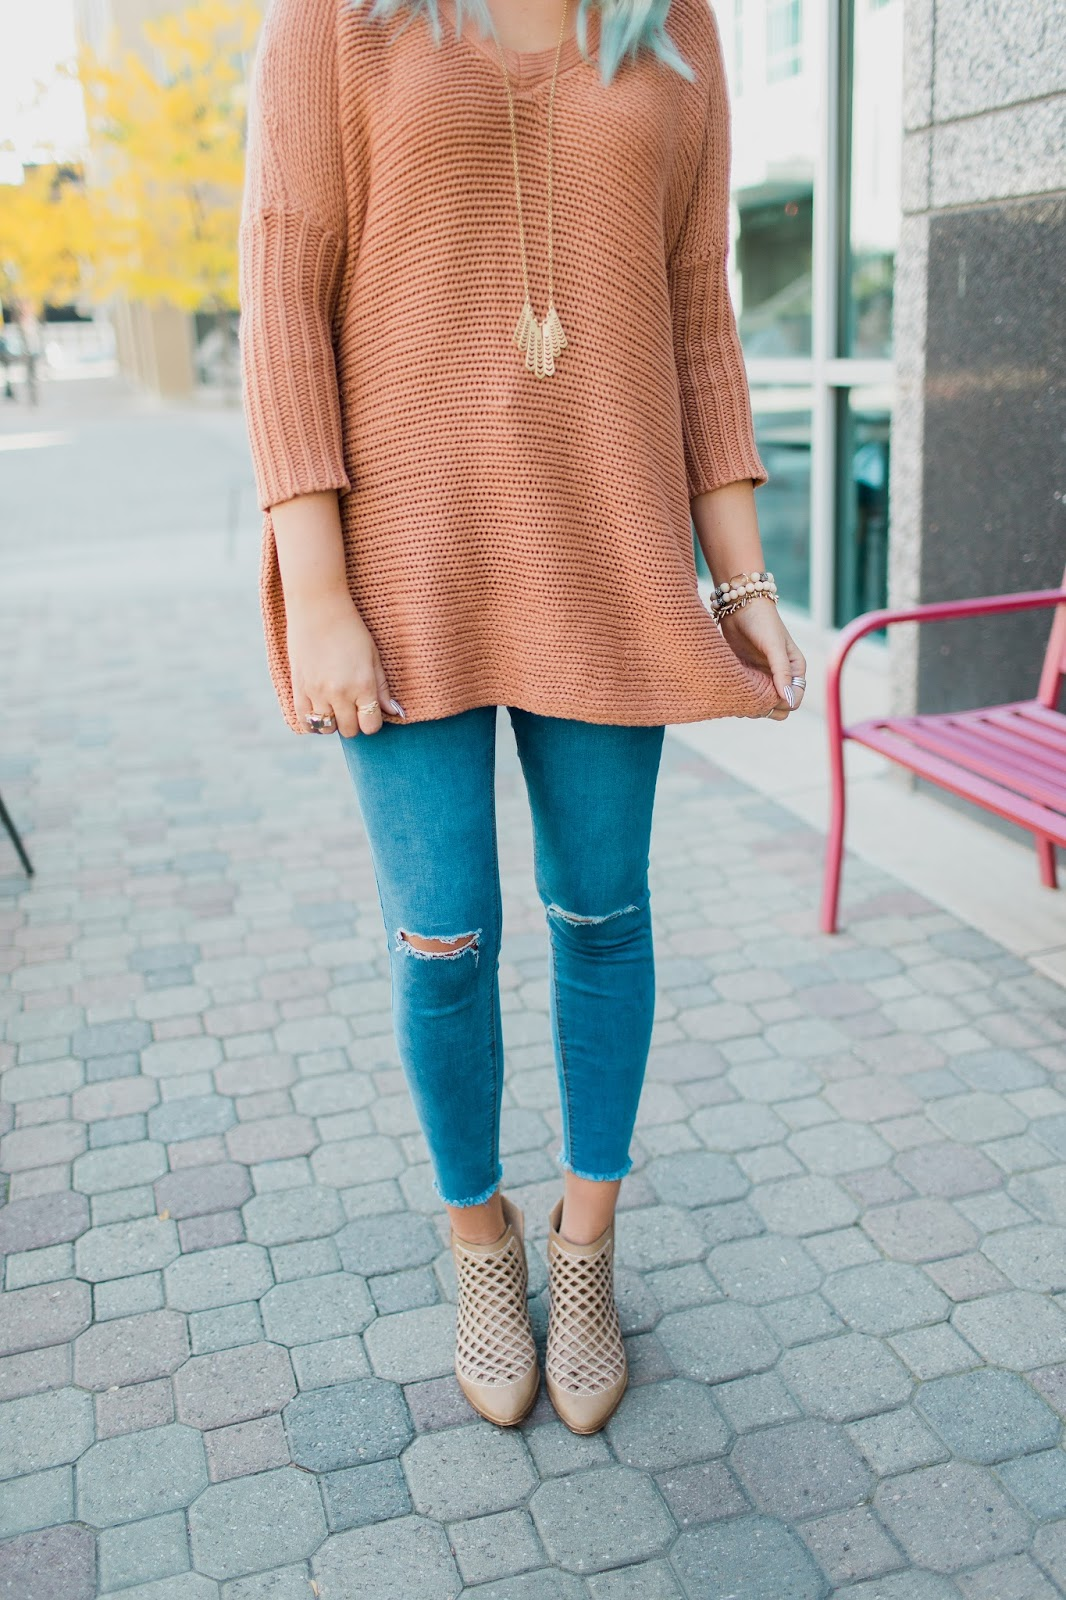 Fall Look, Ripped Jeans, Tan Booties